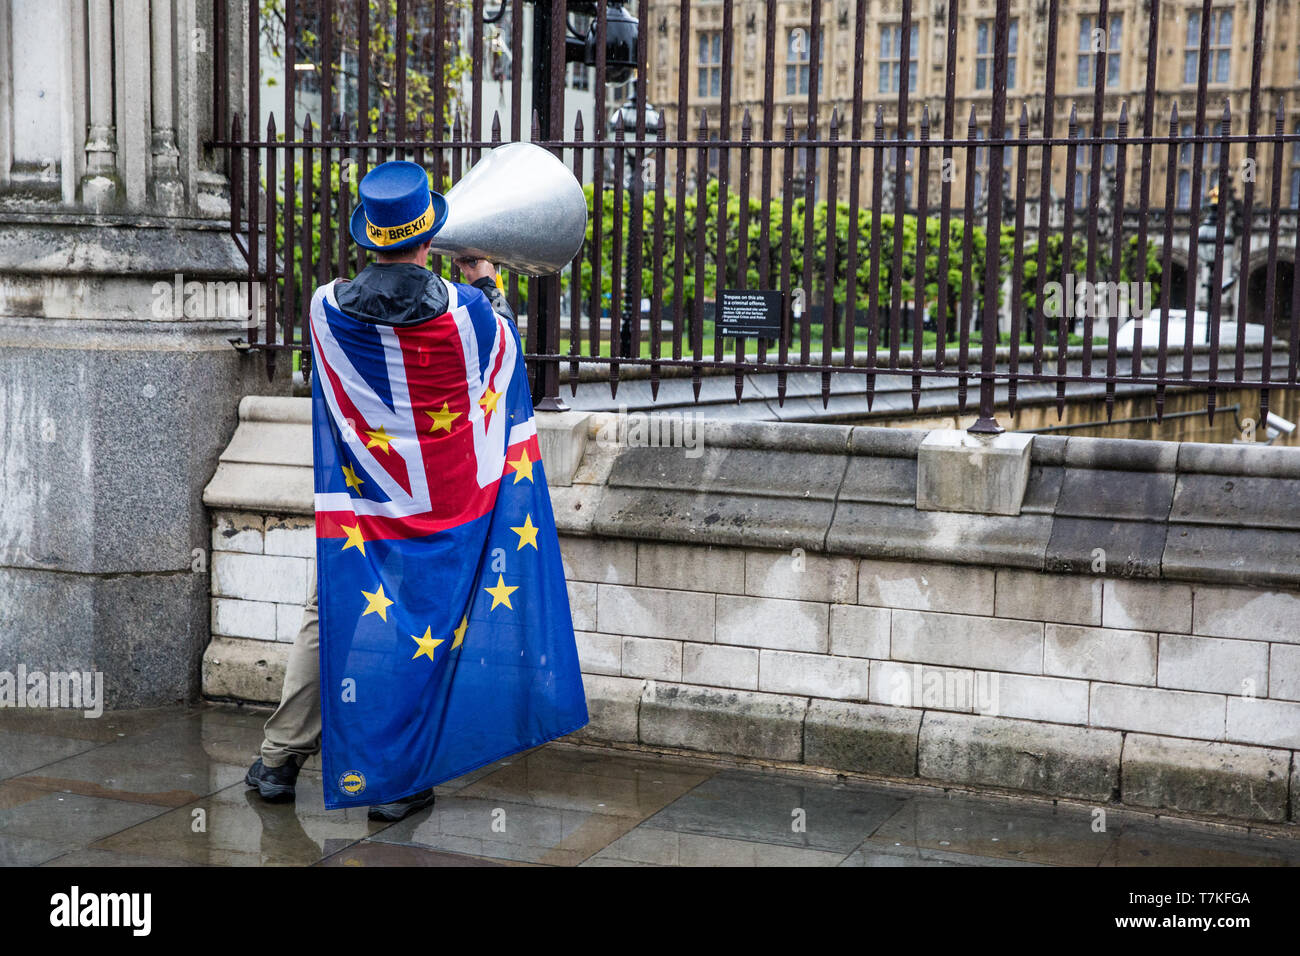 London, UK. 8 May, 2019. Steve Bray of SODEM (Stand of Defiance European Movement) protests with a loud hailer outside Parliament shortly before Prime Minister's Questions. Credit: Mark Kerrison/Alamy Live News - Stock Image